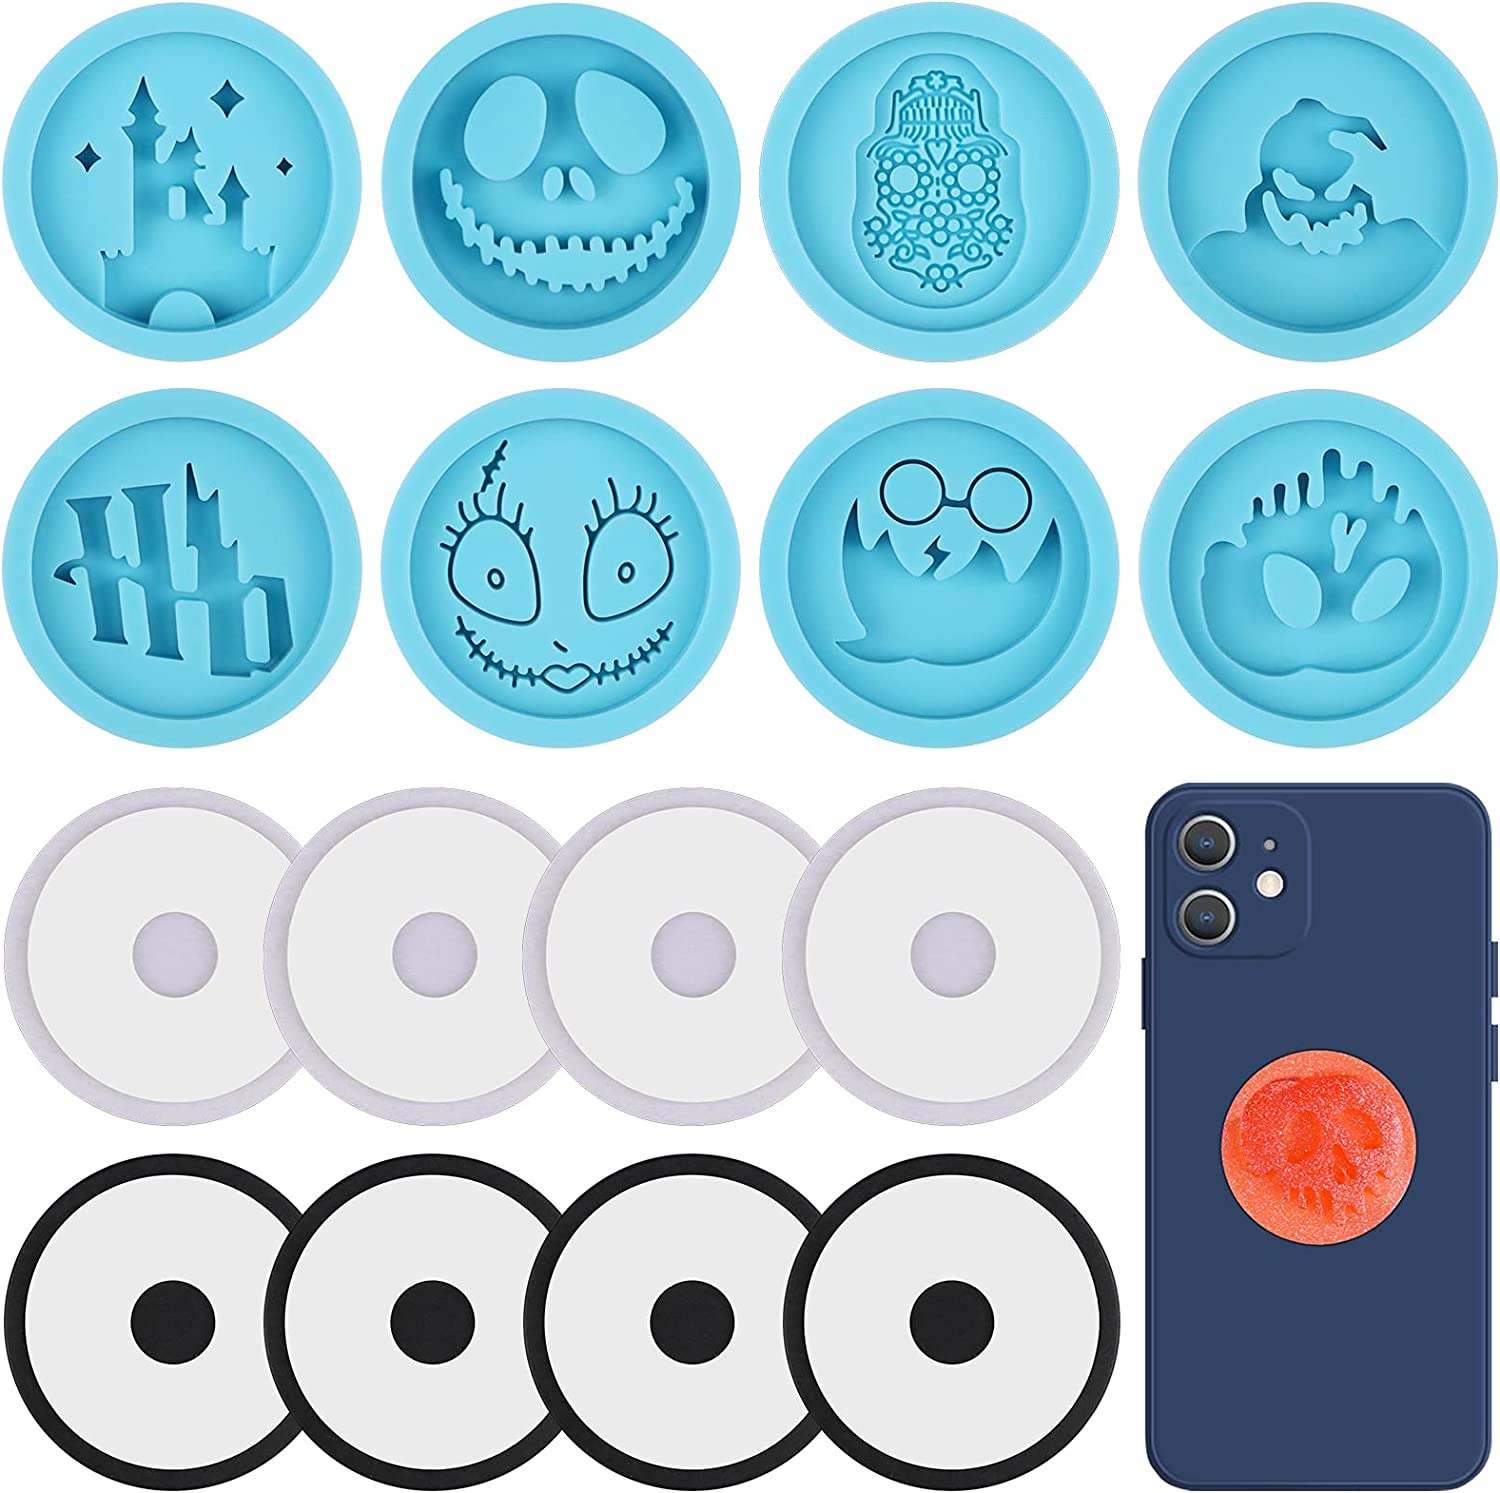 Lanstics 18 Pieces Halloween Phone Grip Mold, Circle Shaped Halloween Ghosts Monsters Pattern Cell Phone Grip Epoxy Resin Molds Silicone On Top Phone Holder Stand Molds for DIY Crafts